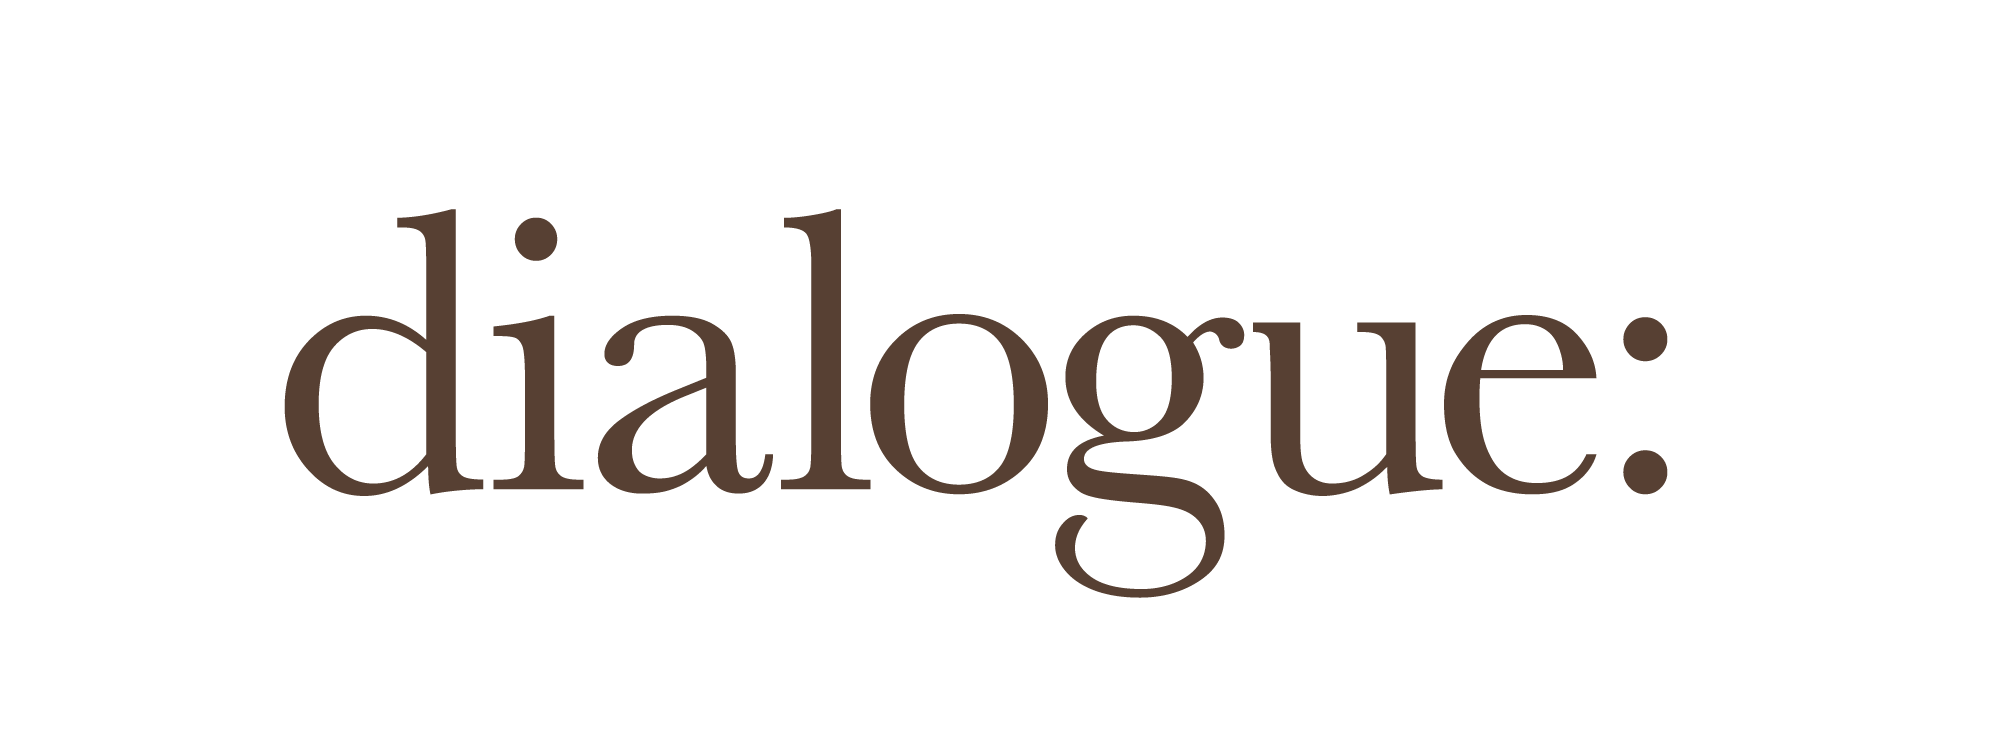 Dialogue_logo-06